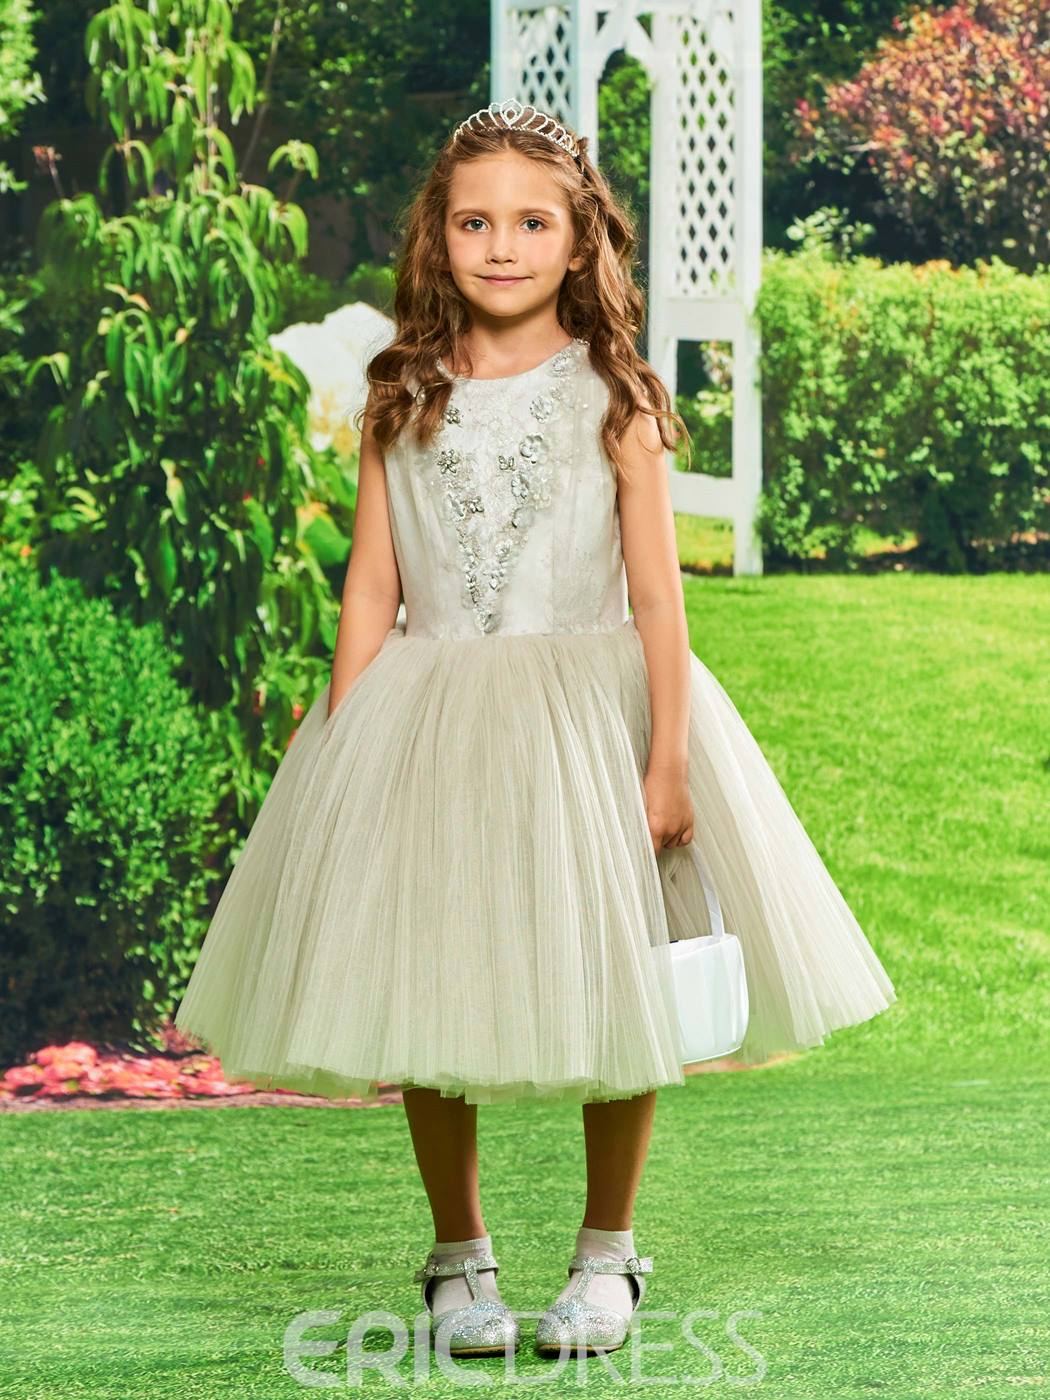 40f2ed30cd1 Ericdress Ball Gown Tea Length Flower Girl Party Dress 13143354 ...